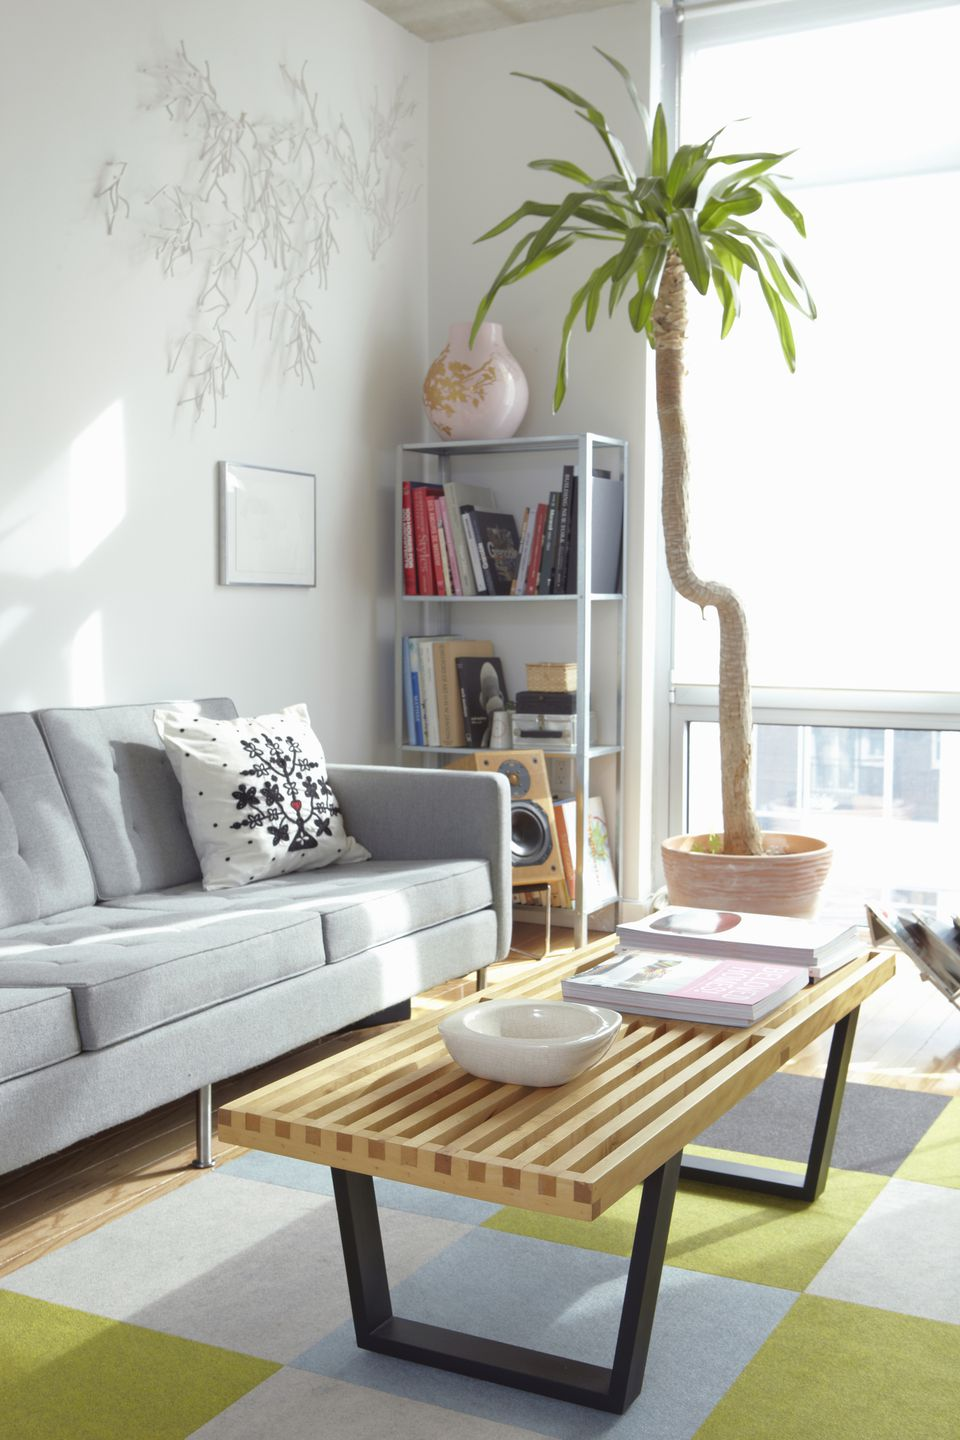 Image Gallery of Small Living Rooms